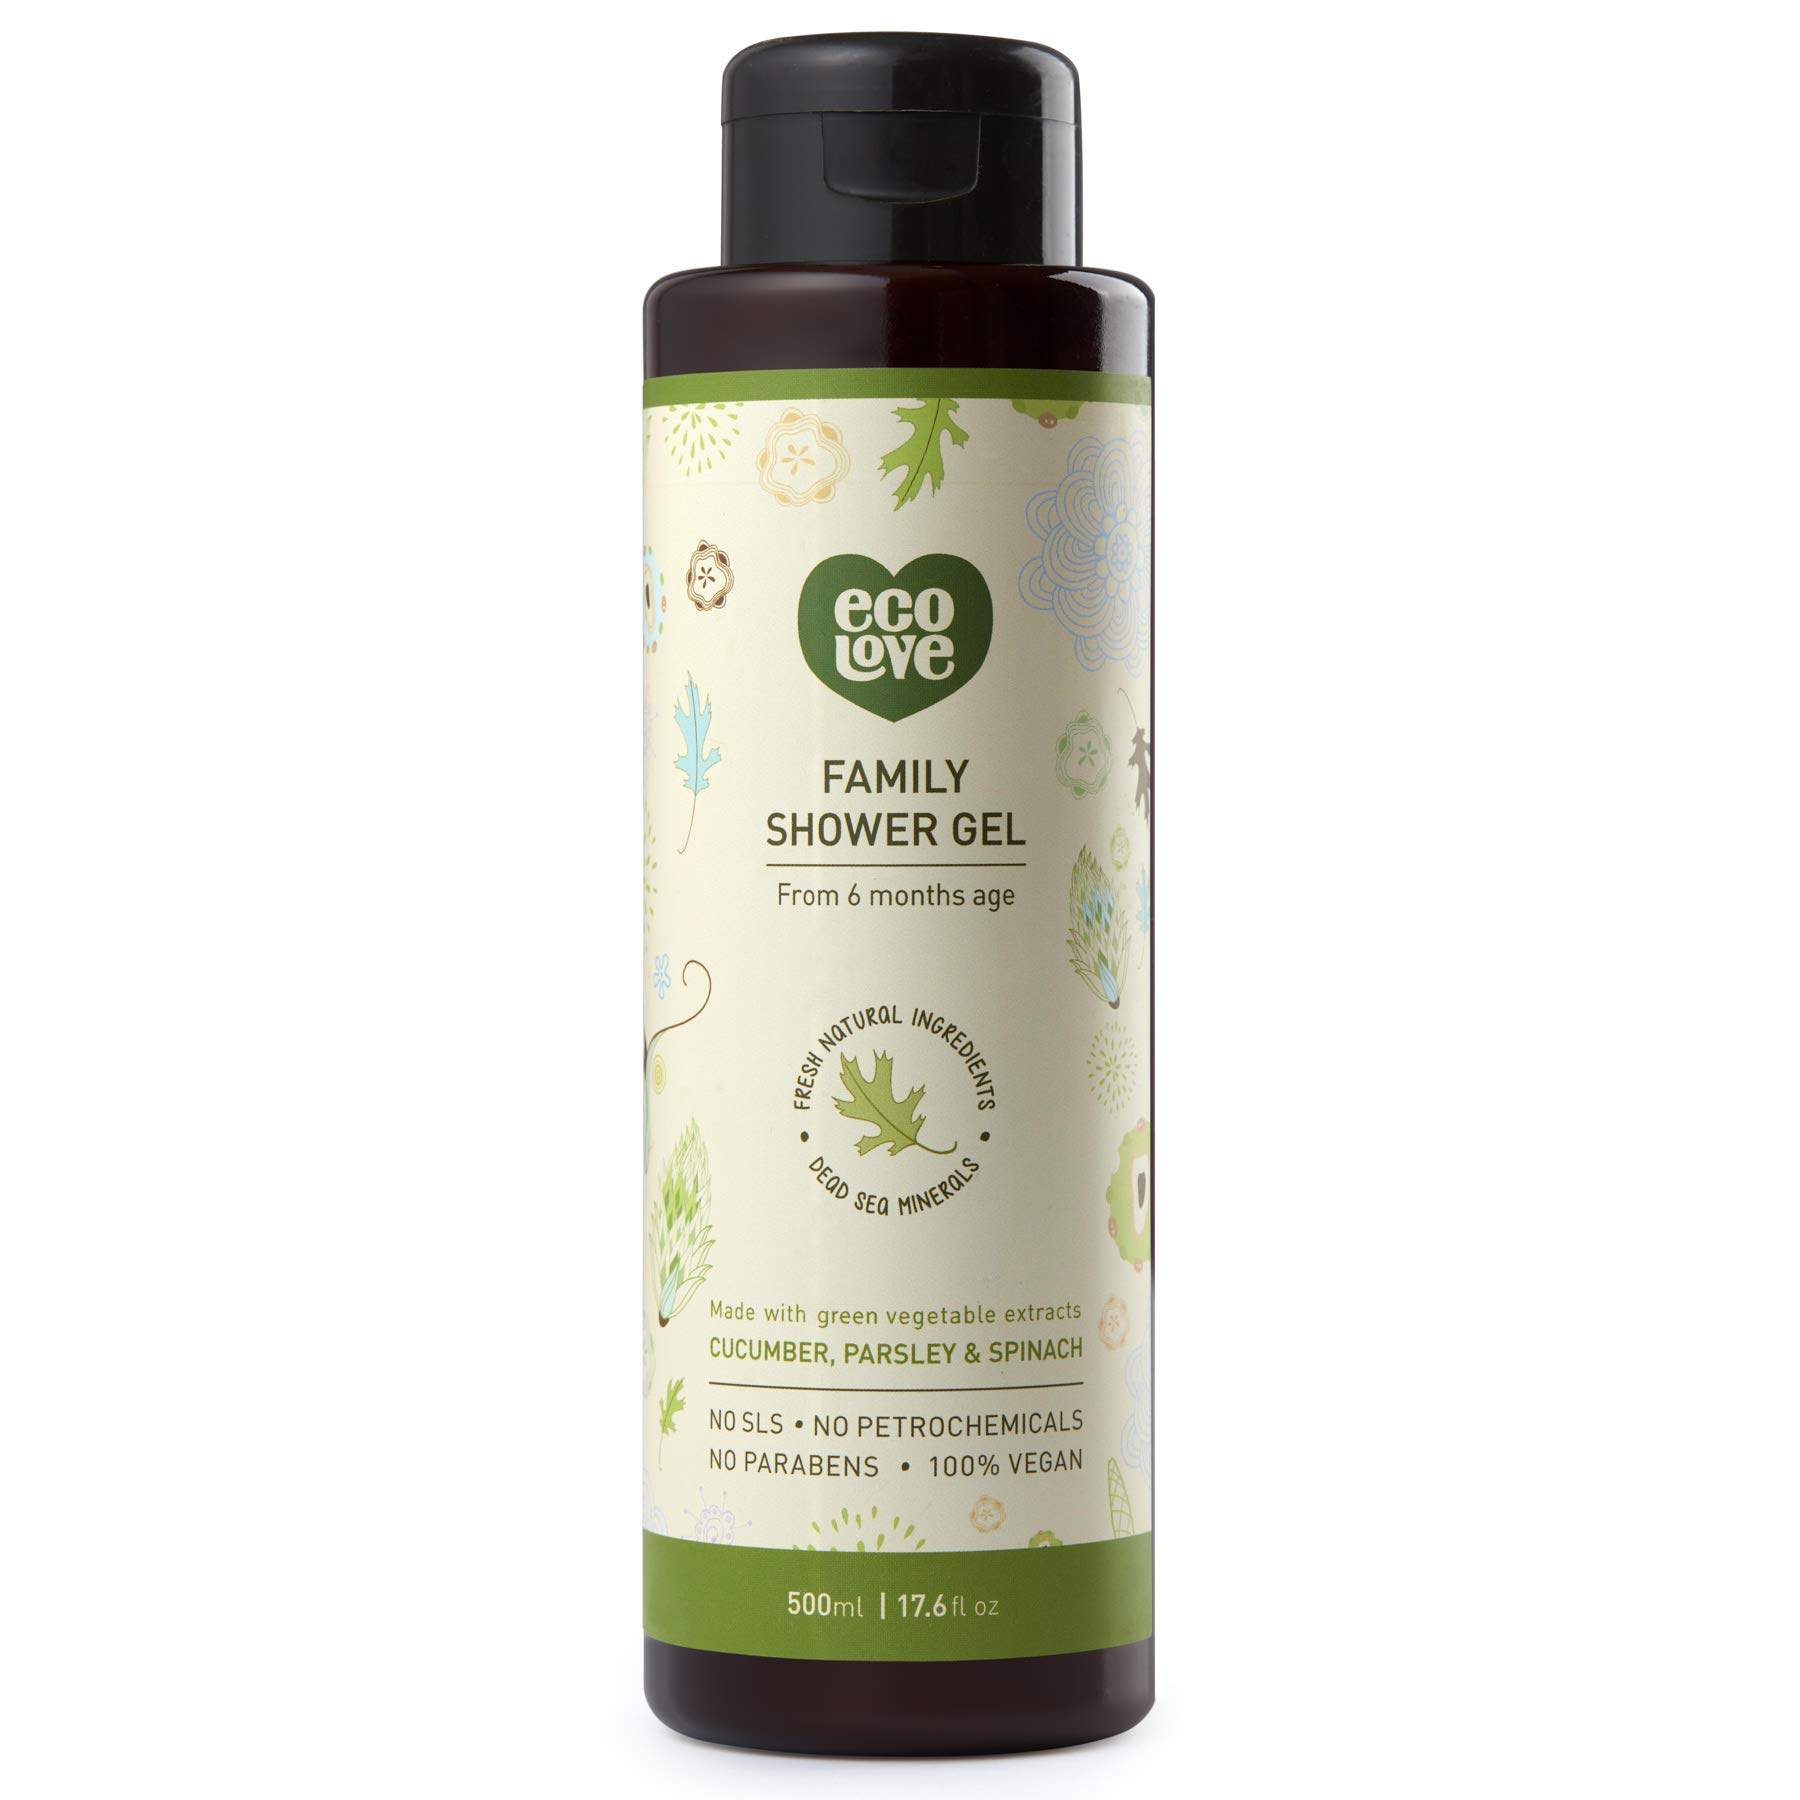 ecoLove Moisturizing Body Wash with Organic Cucumber Spinach and Parsley Natural Body Wash for Women Men Kids Babies Vegan and Cruelty Free Shower Gel, 17.6 oz